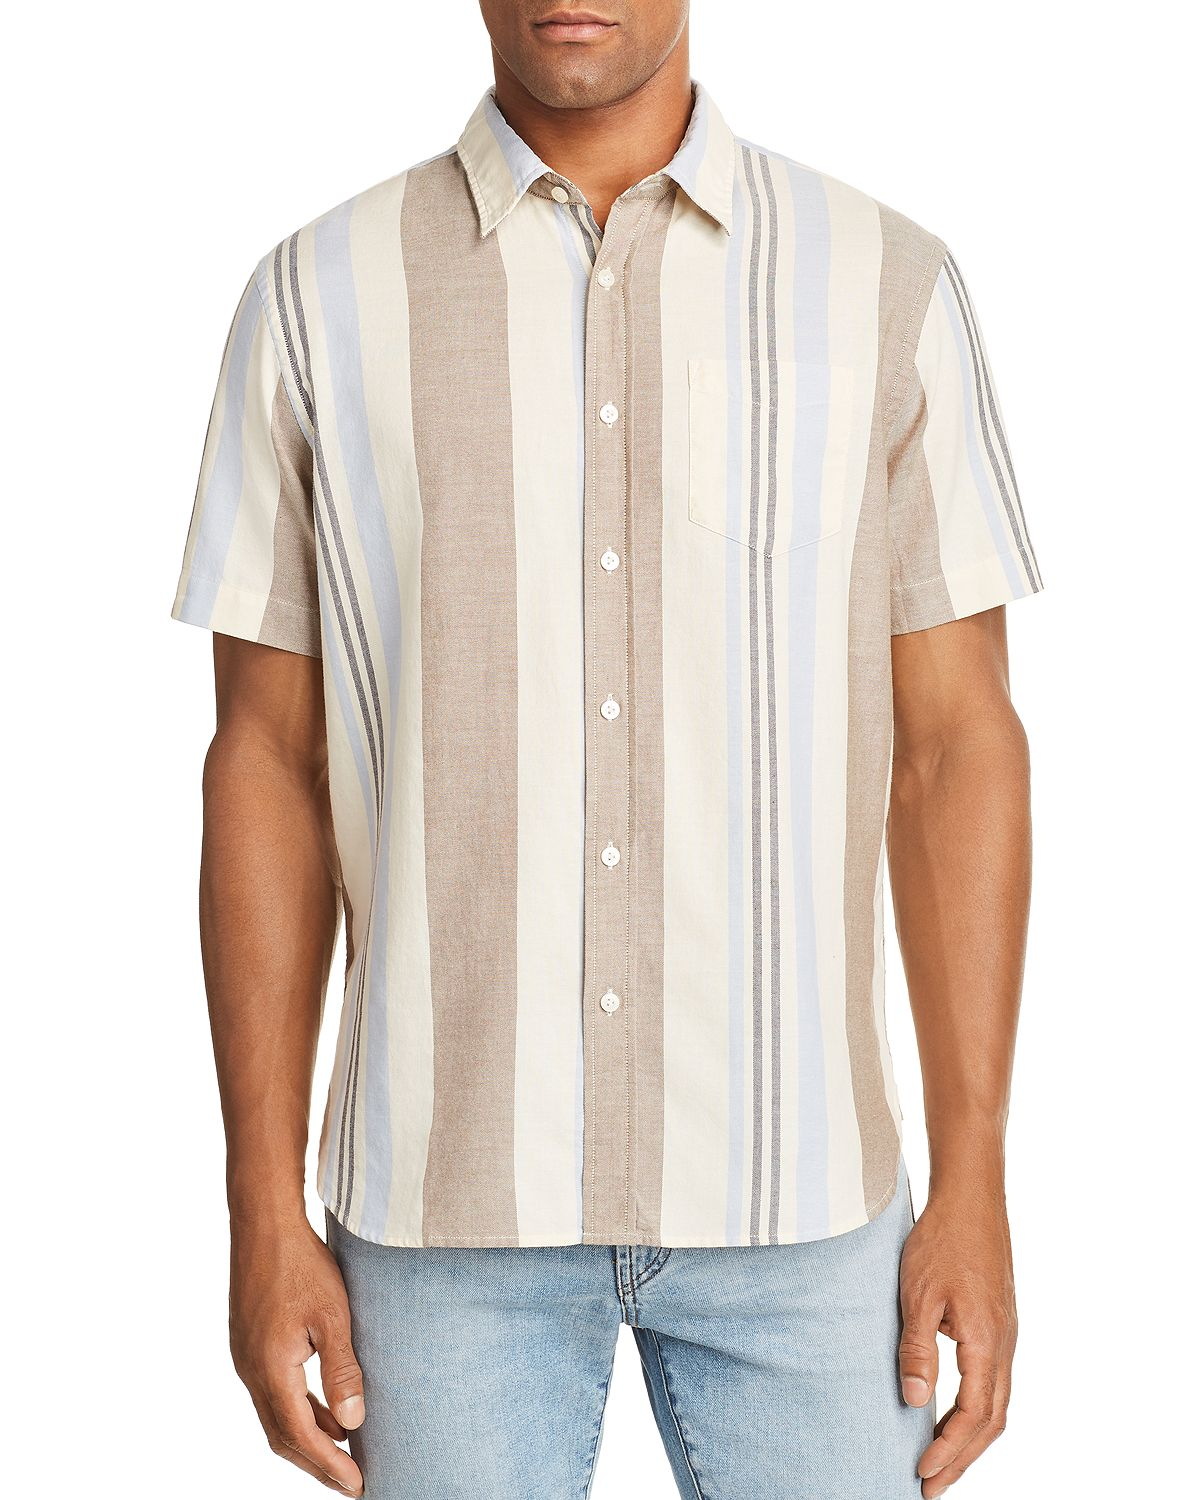 Jachs Ny Variegated-stripe Regular Fit Button-down Shirt